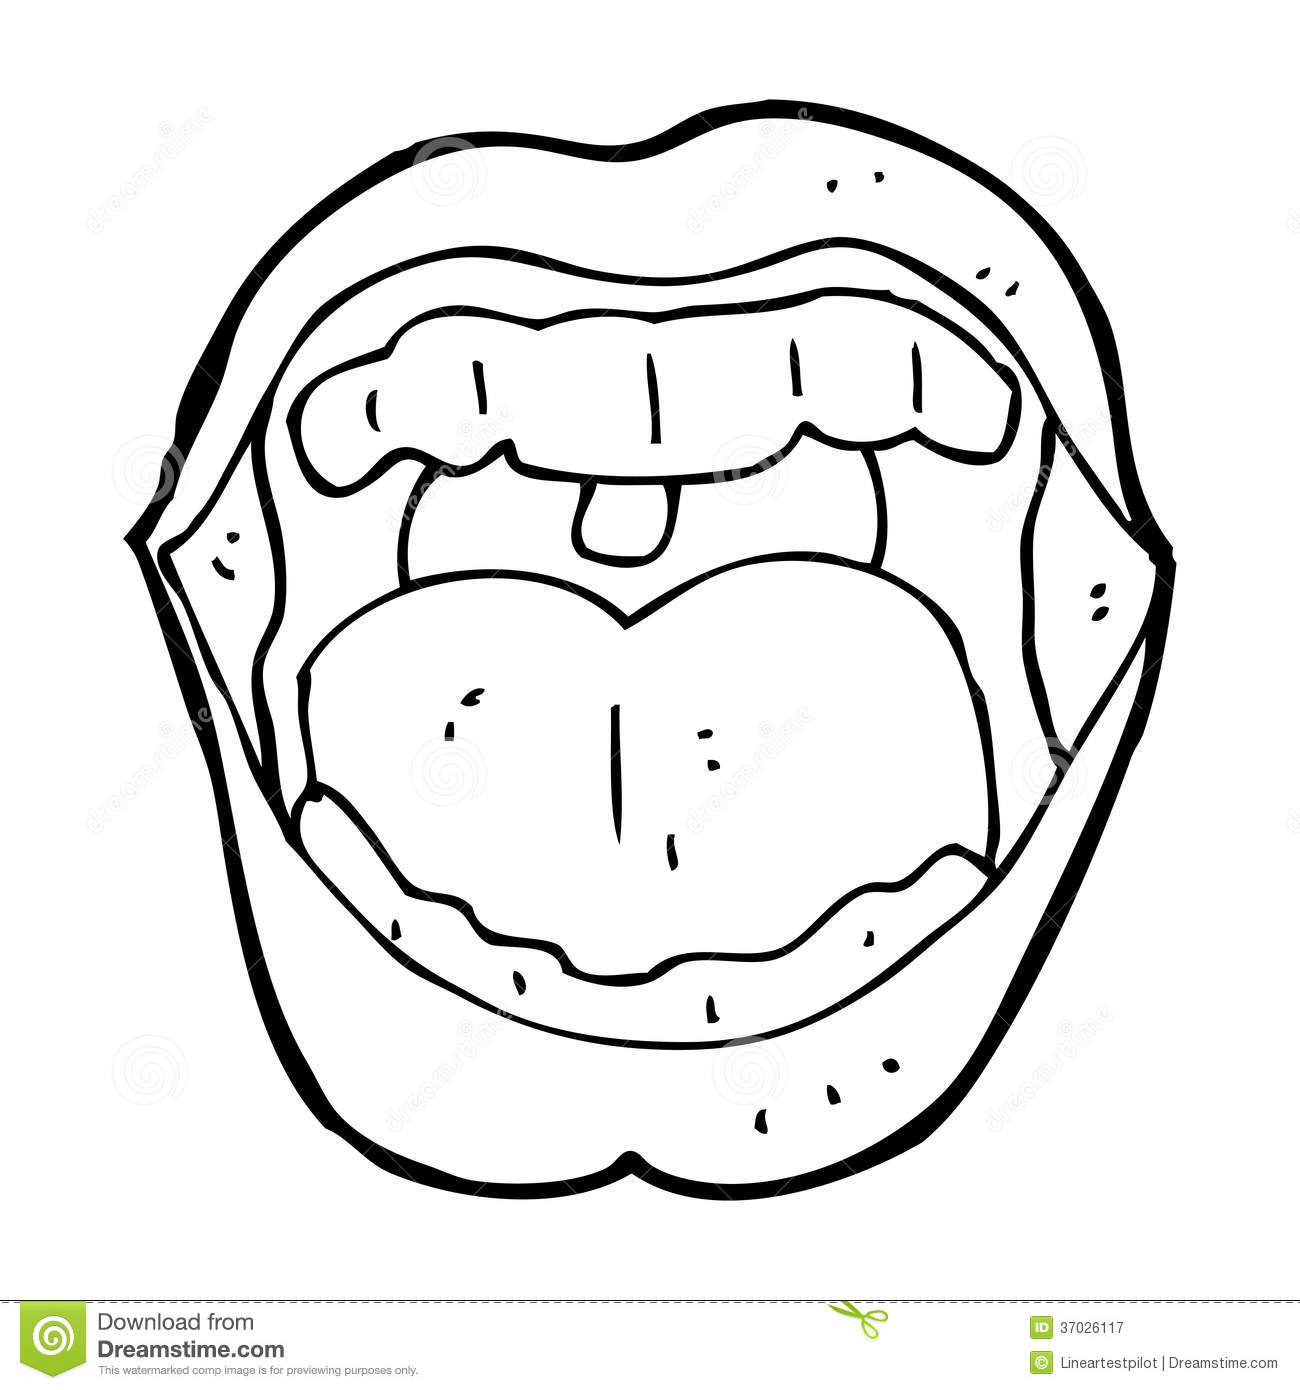 coloring pages for tongue teeth - photo#21